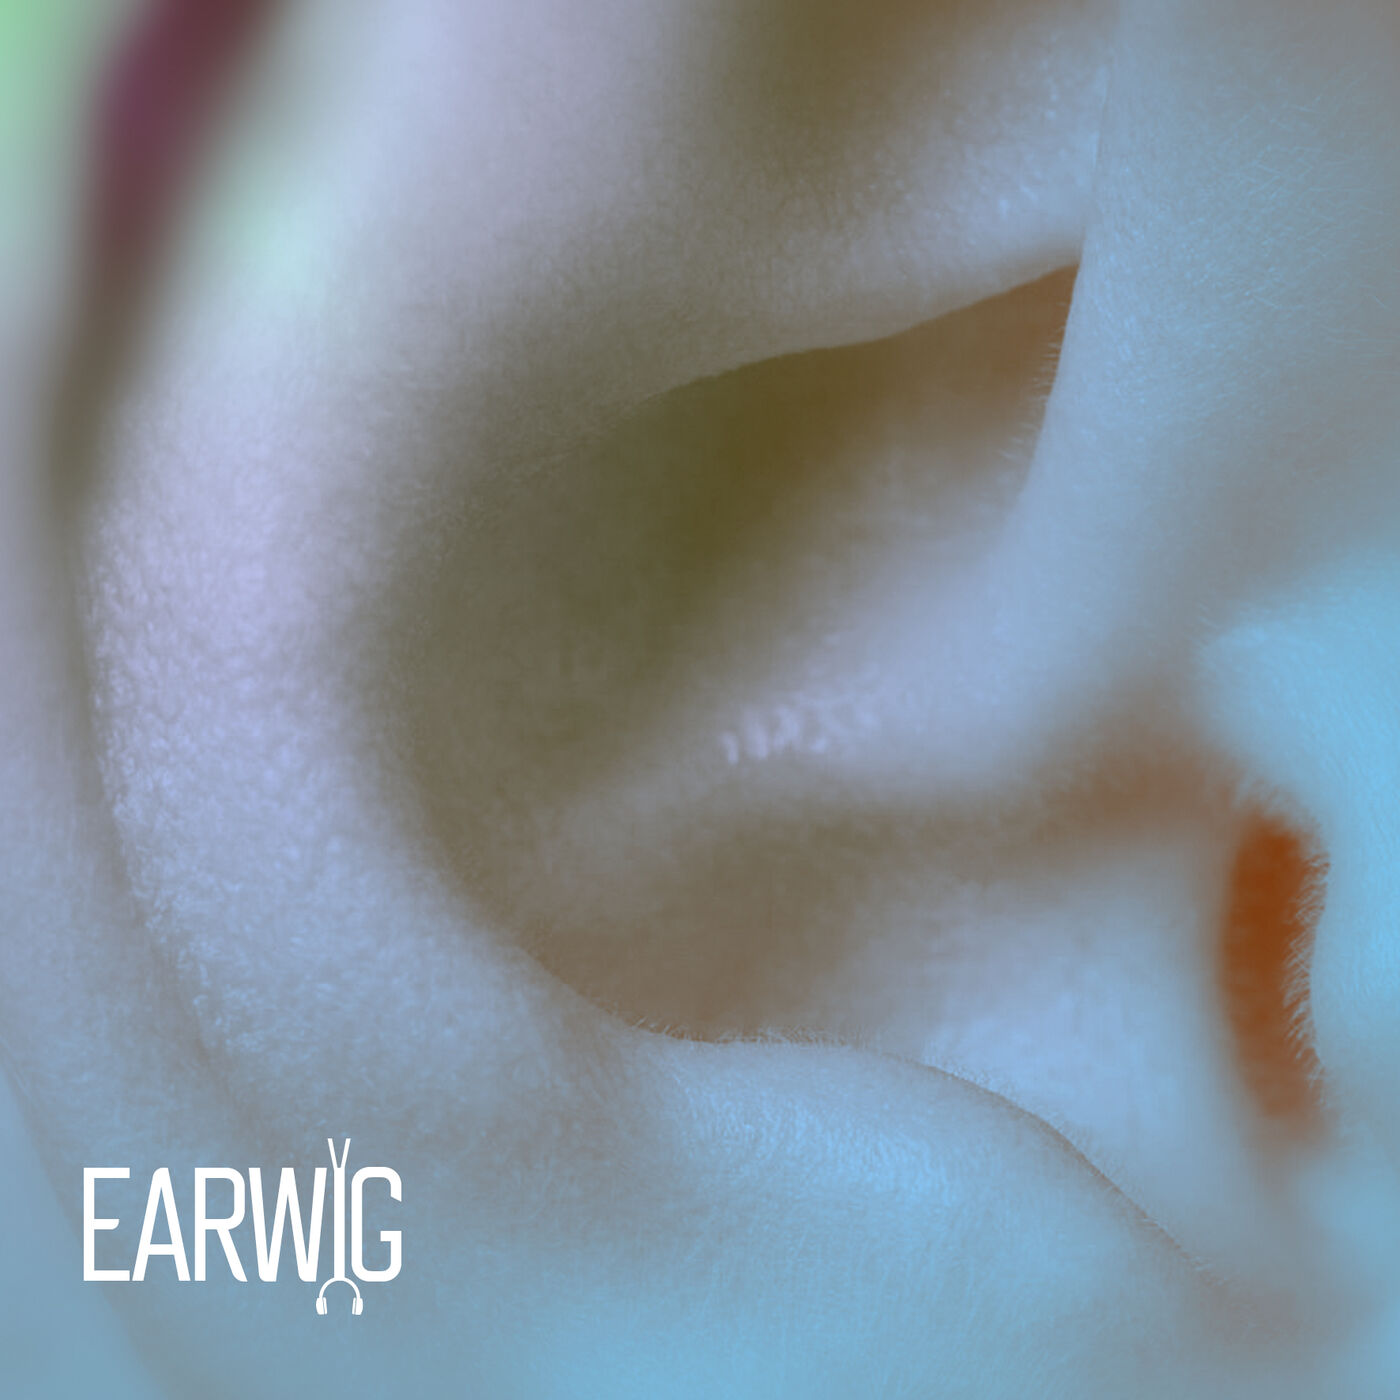 Earwig Season 1 Introduction